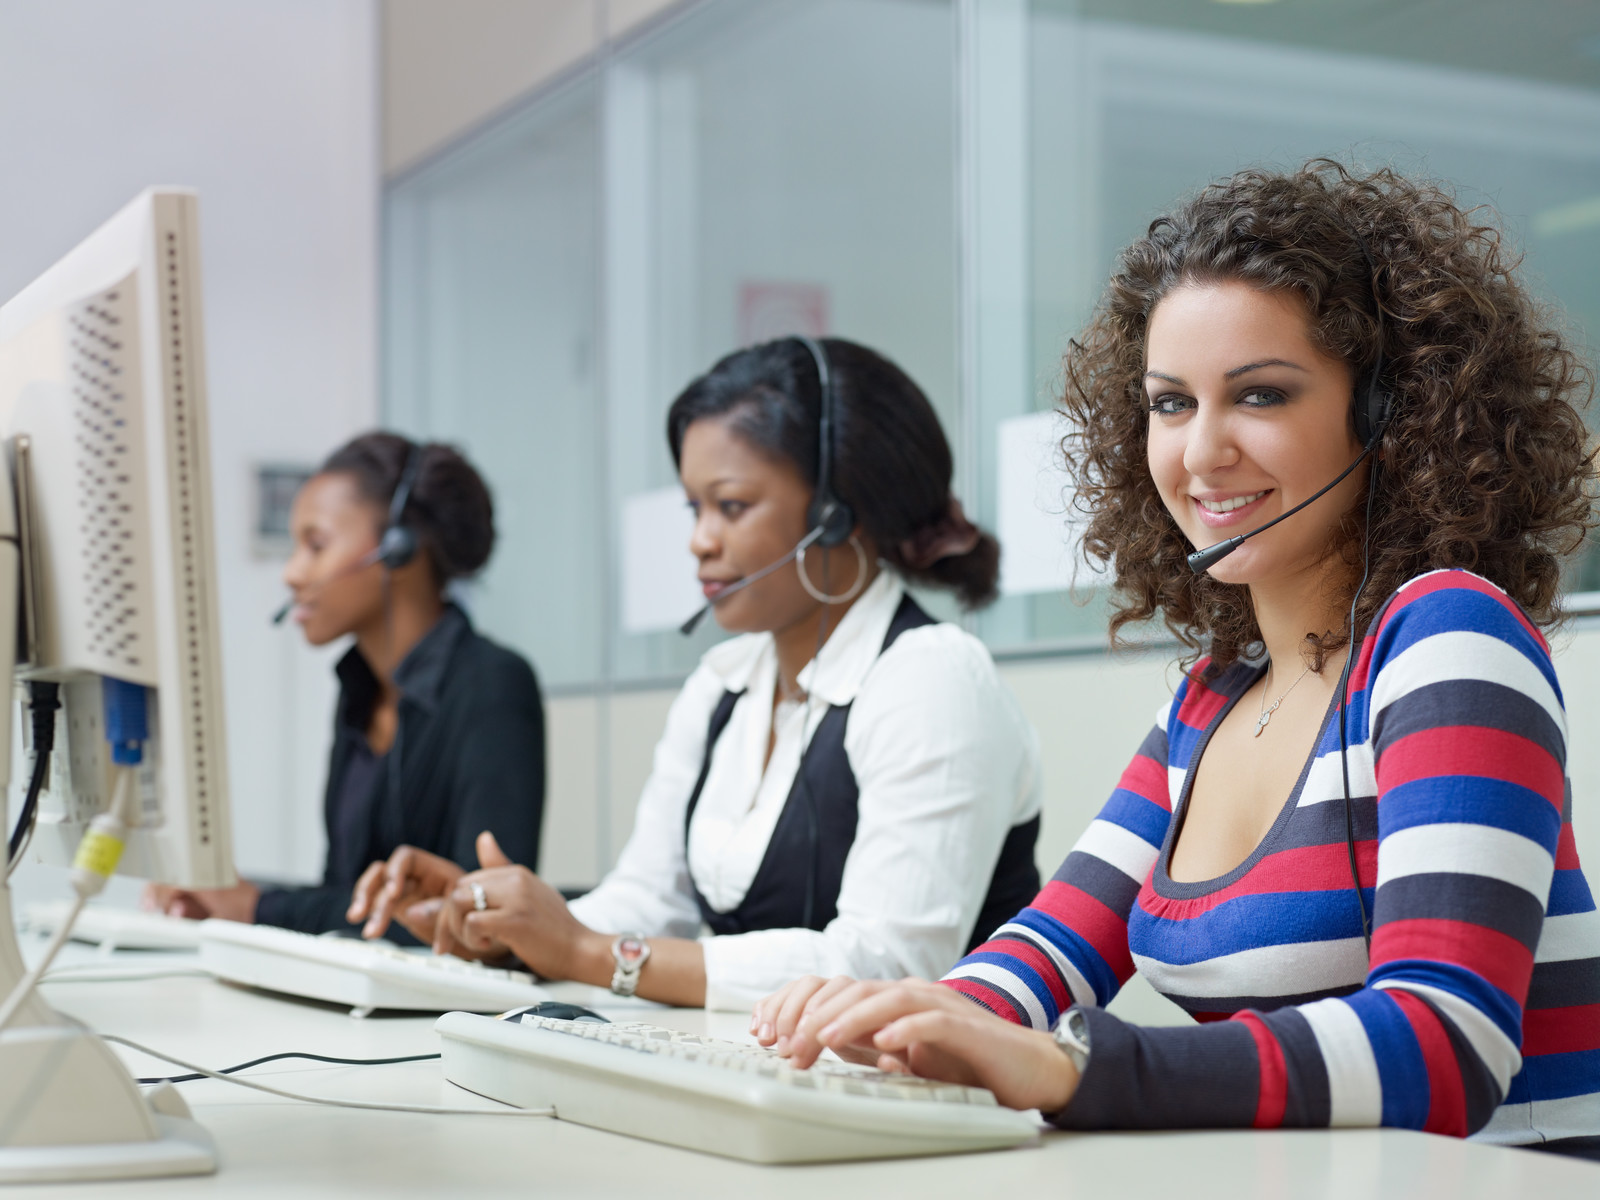 Call center with three women on their headsets sitting at computers representing navigators helping people choose insurance